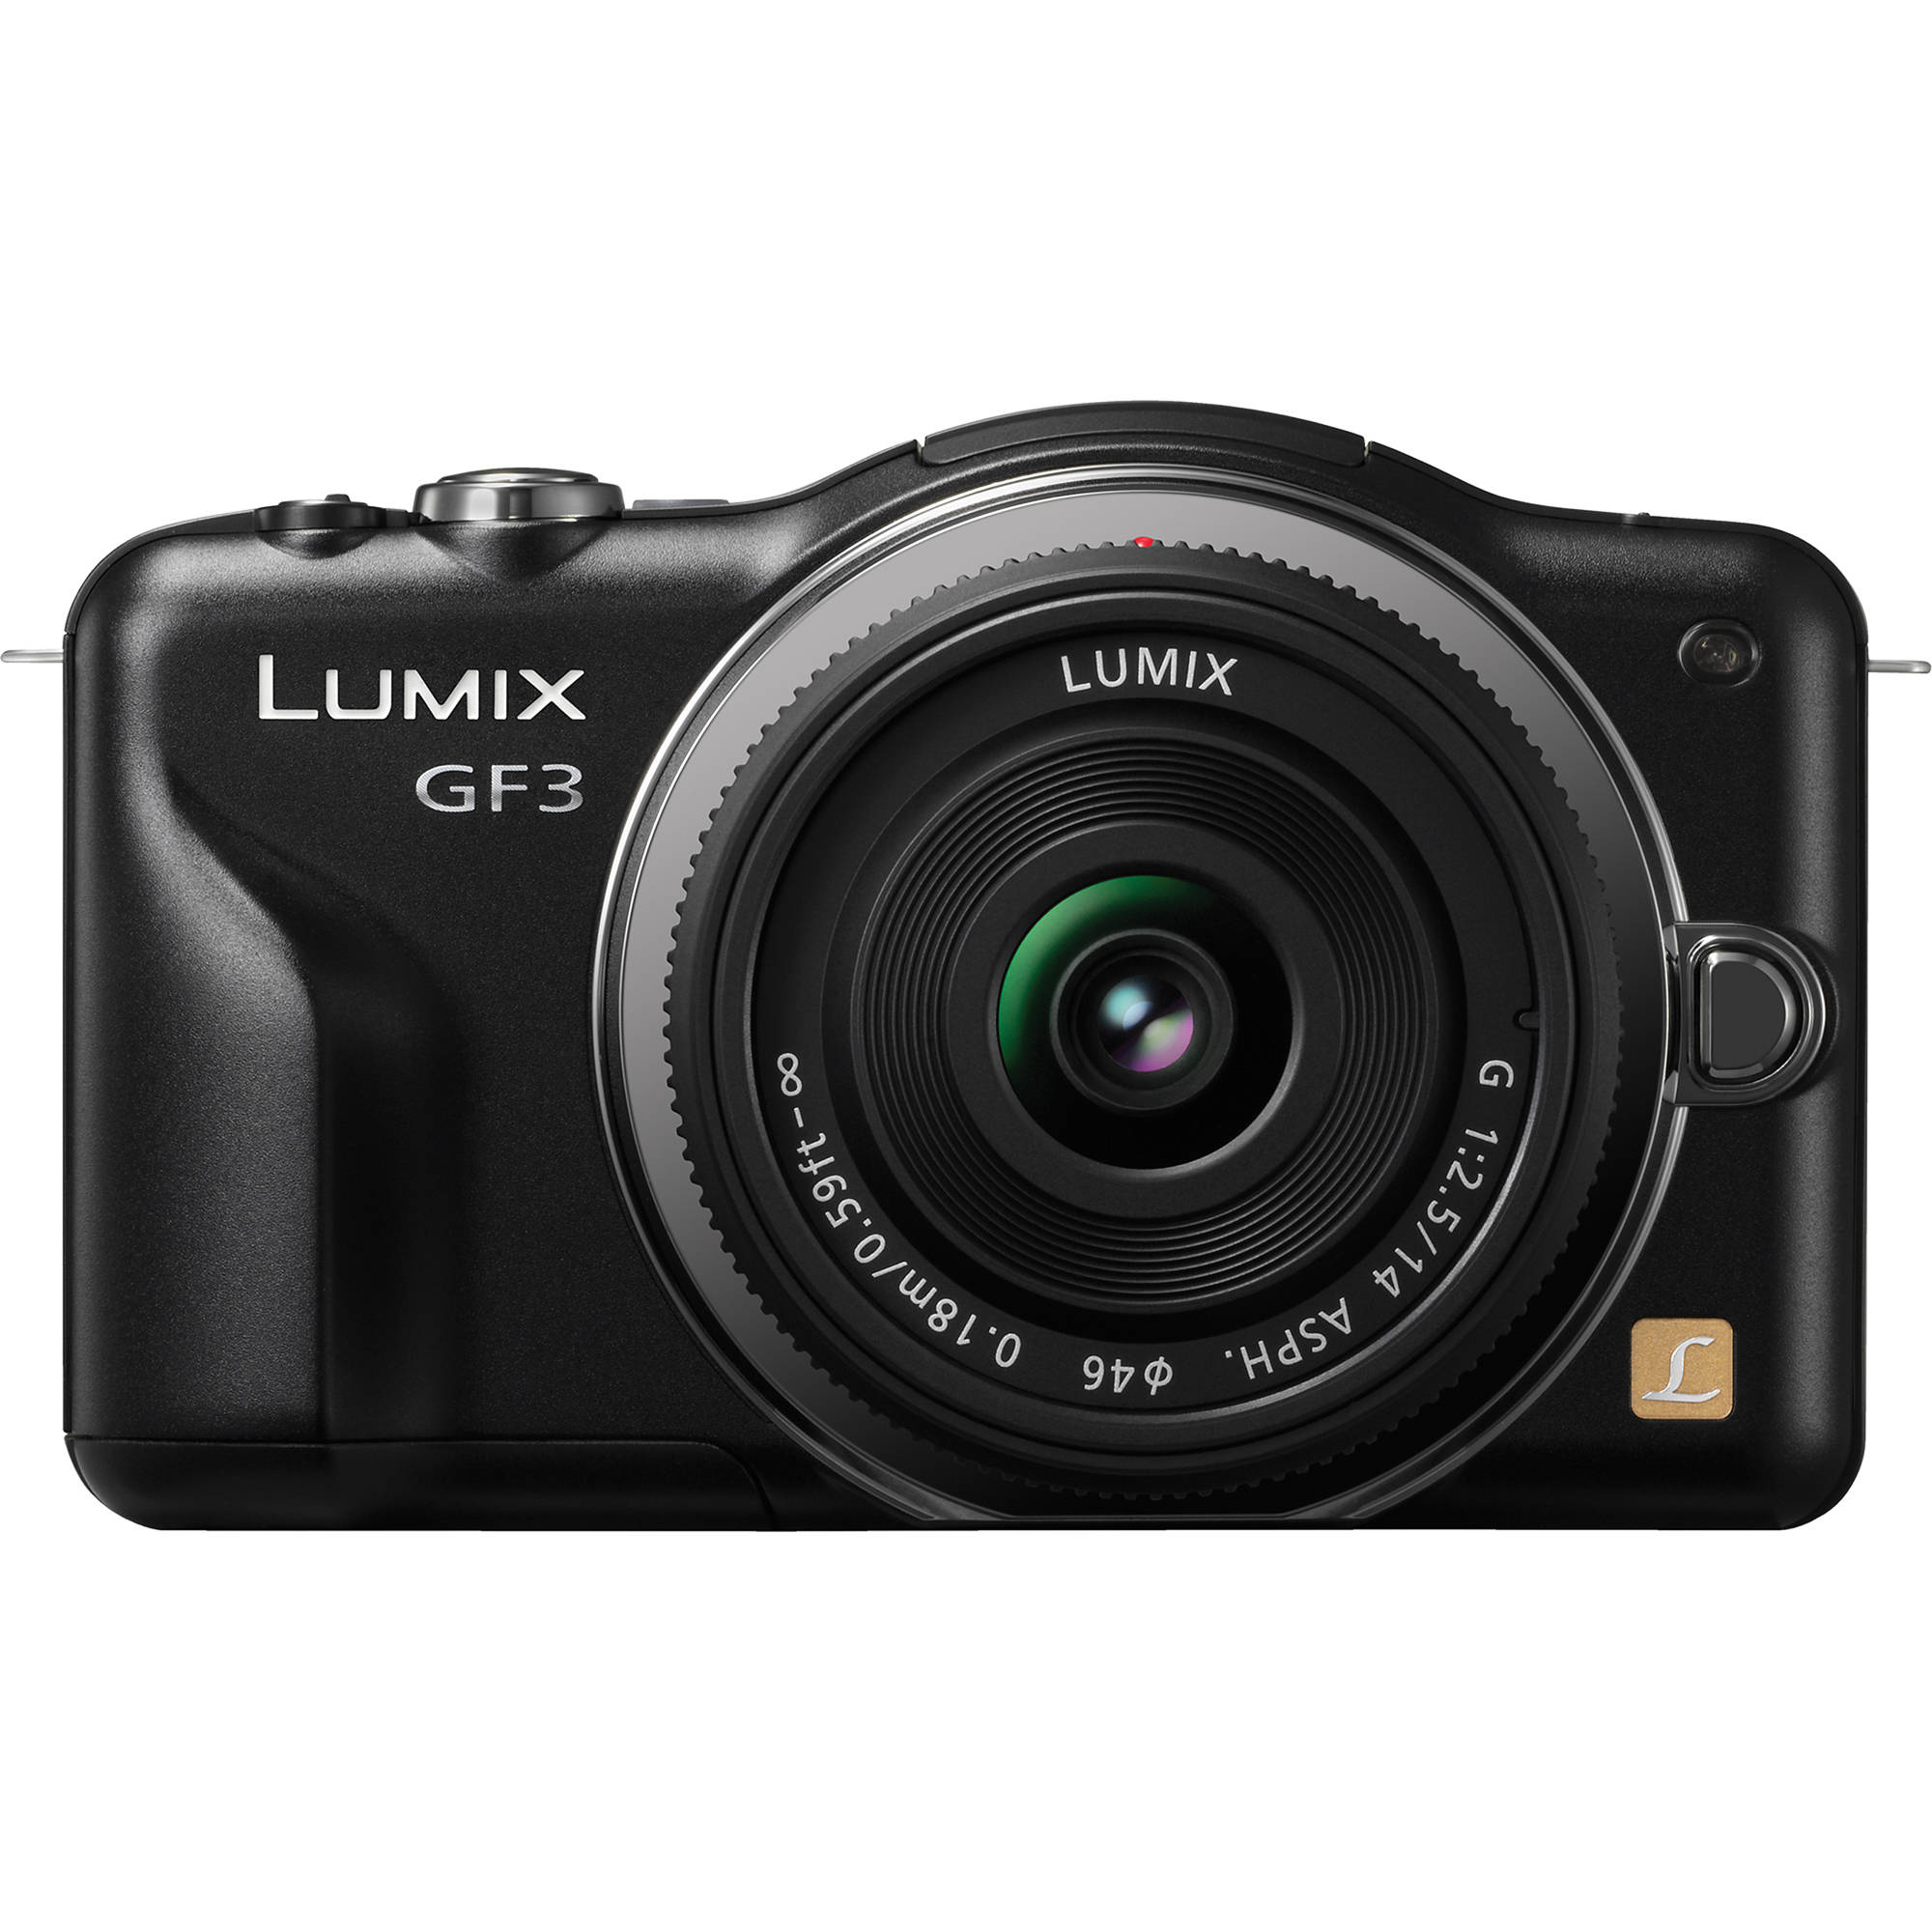 panasonic lumix dmc gf3 digital camera with 14mm lens dmc gf3ck rh bhphotovideo com